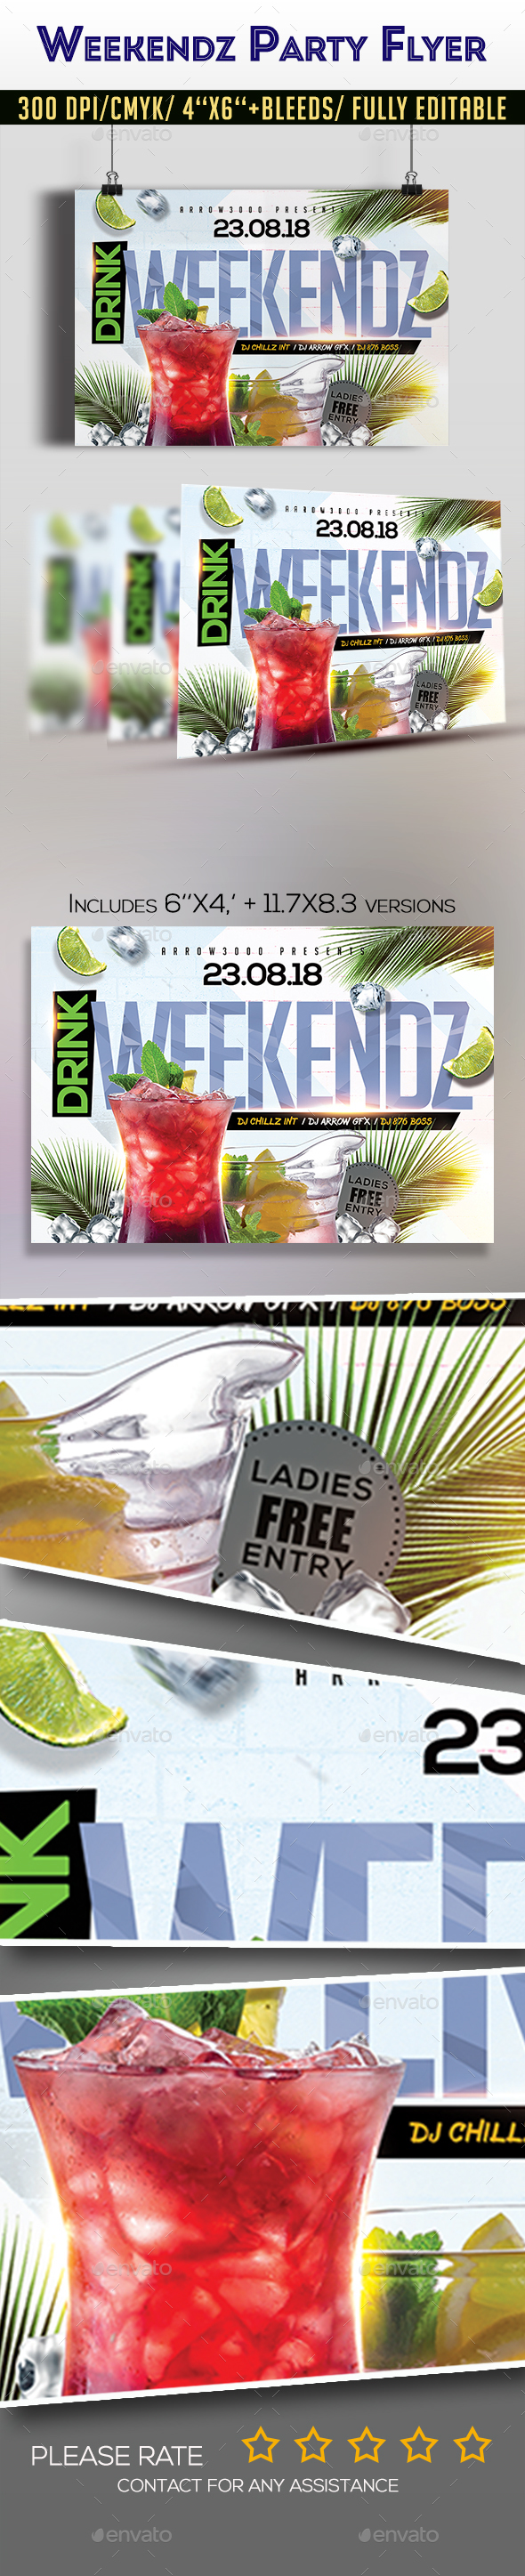 Weekendz Party Flyer - Clubs & Parties Events